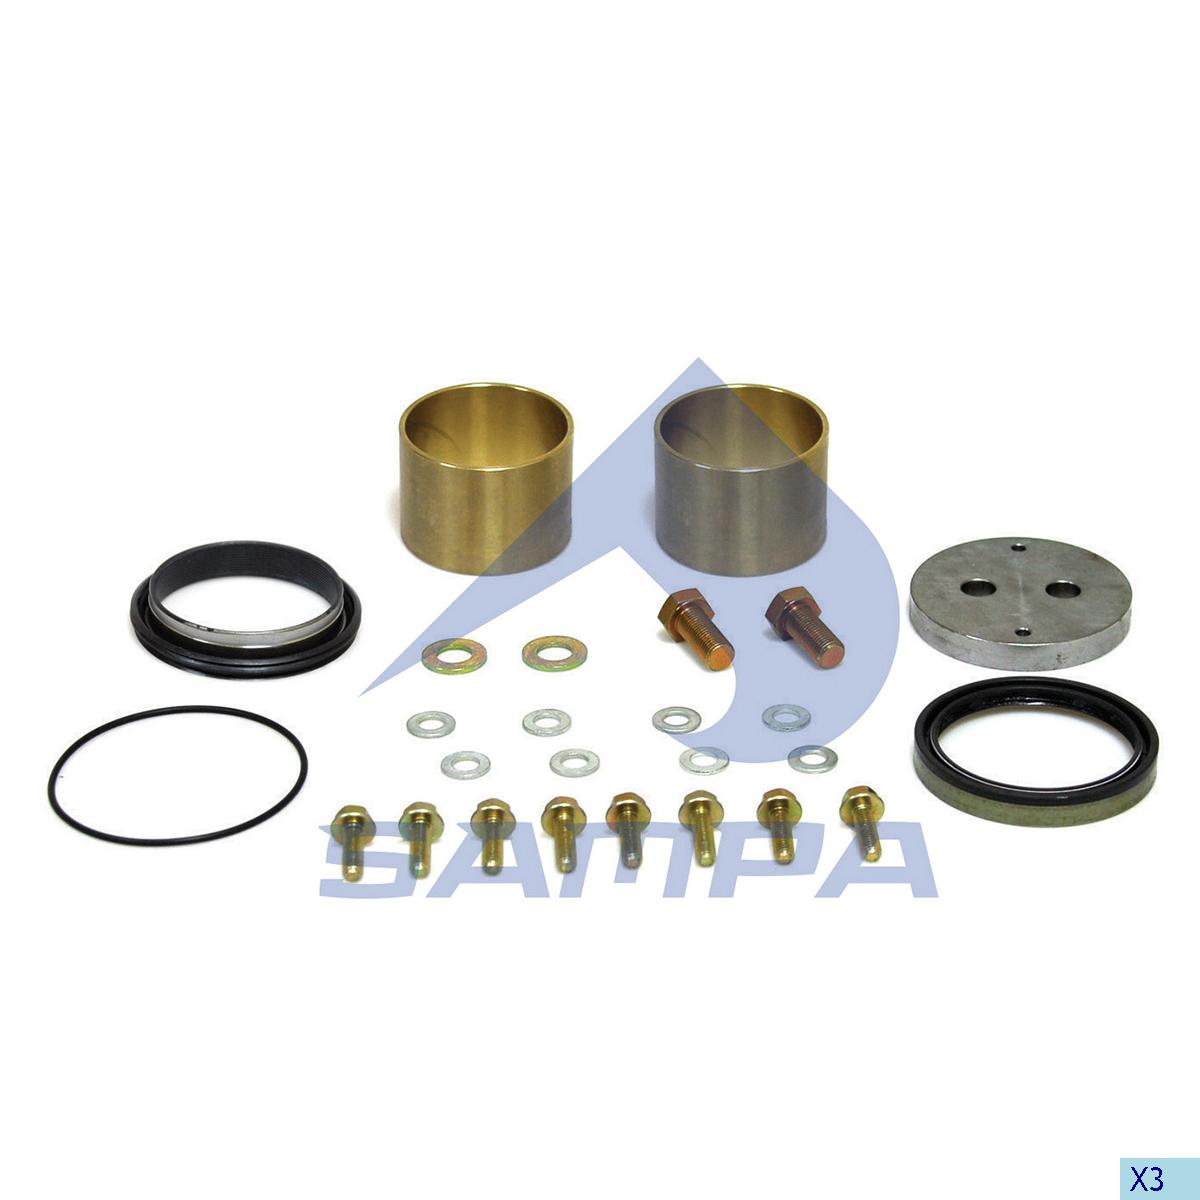 Repair Kit, Bogie Suspension, Daf, Suspension